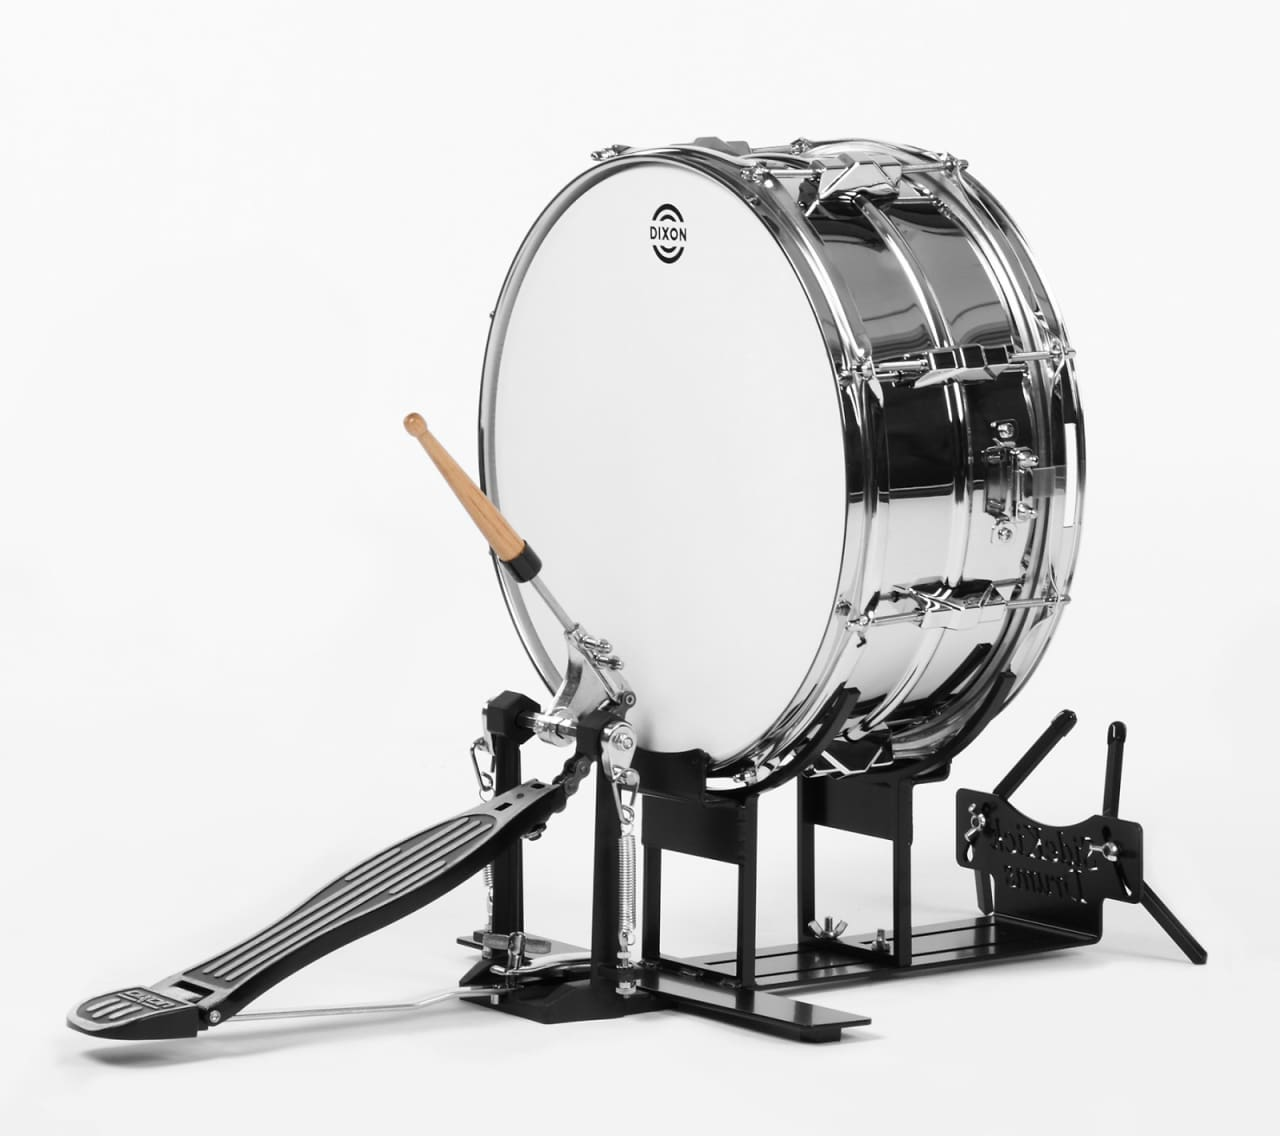 foot operated snare drum kit by side kick drums reverb. Black Bedroom Furniture Sets. Home Design Ideas